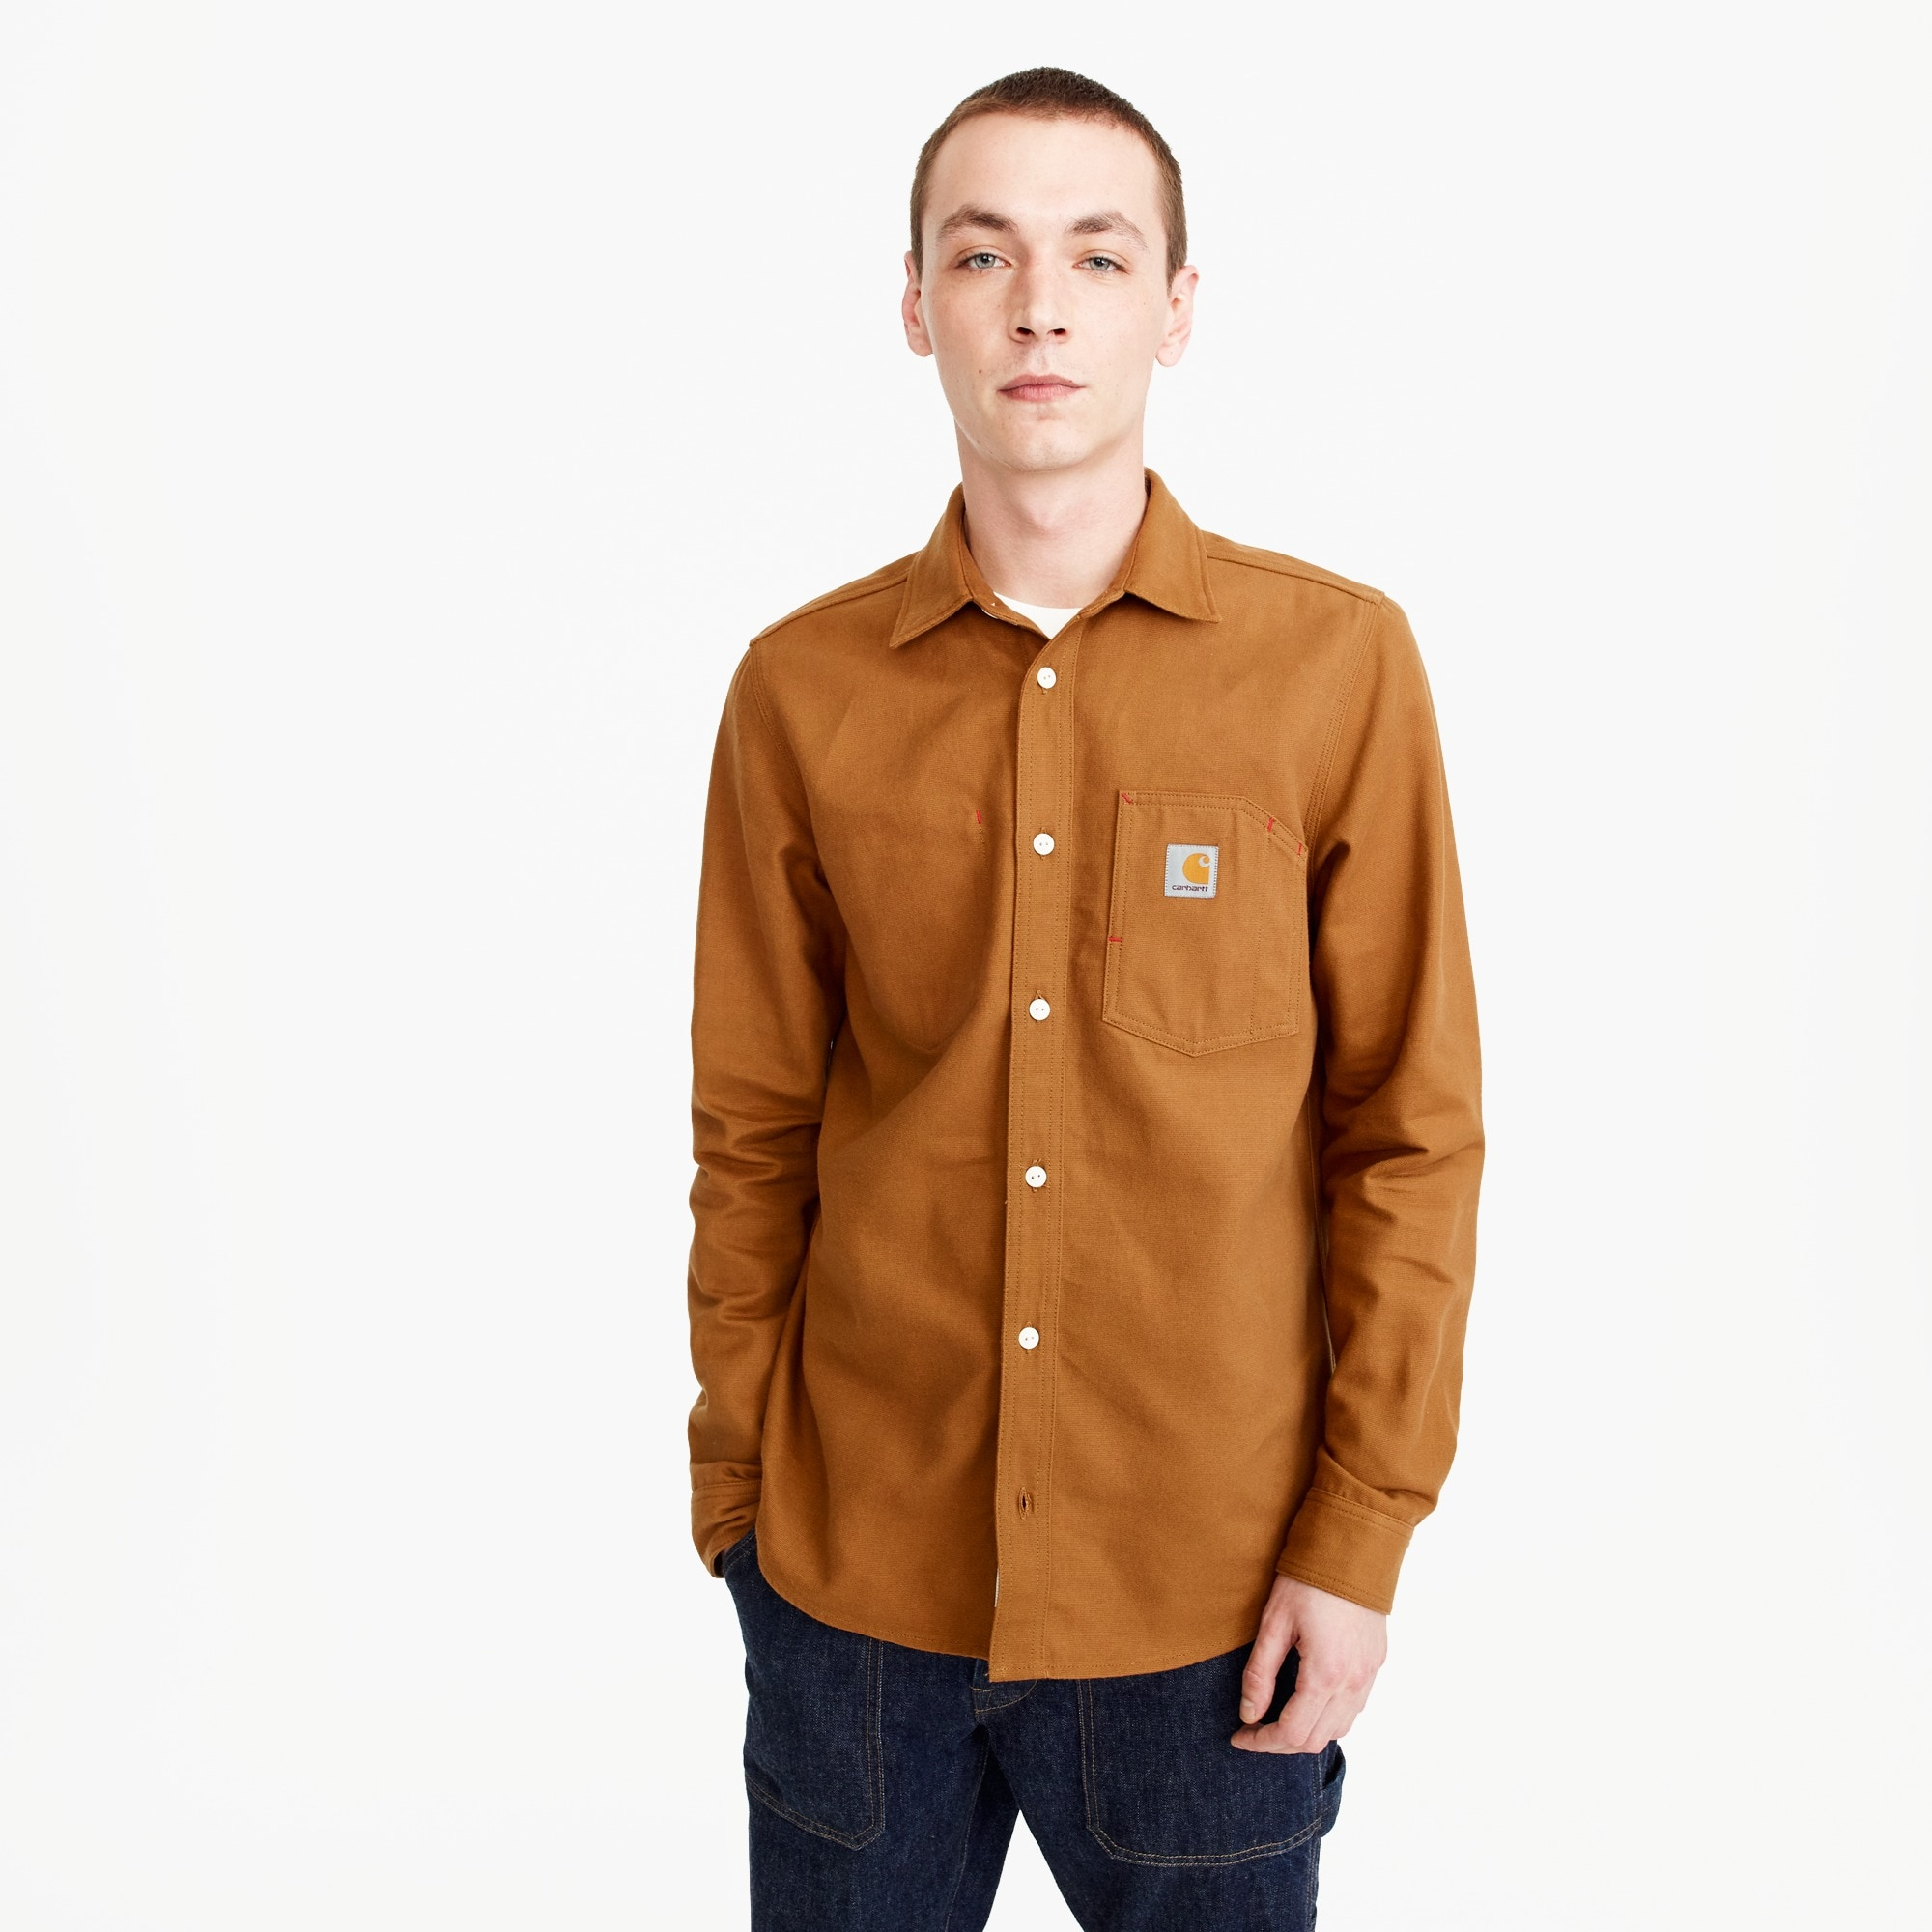 Carhartt® Work in Progress shirt